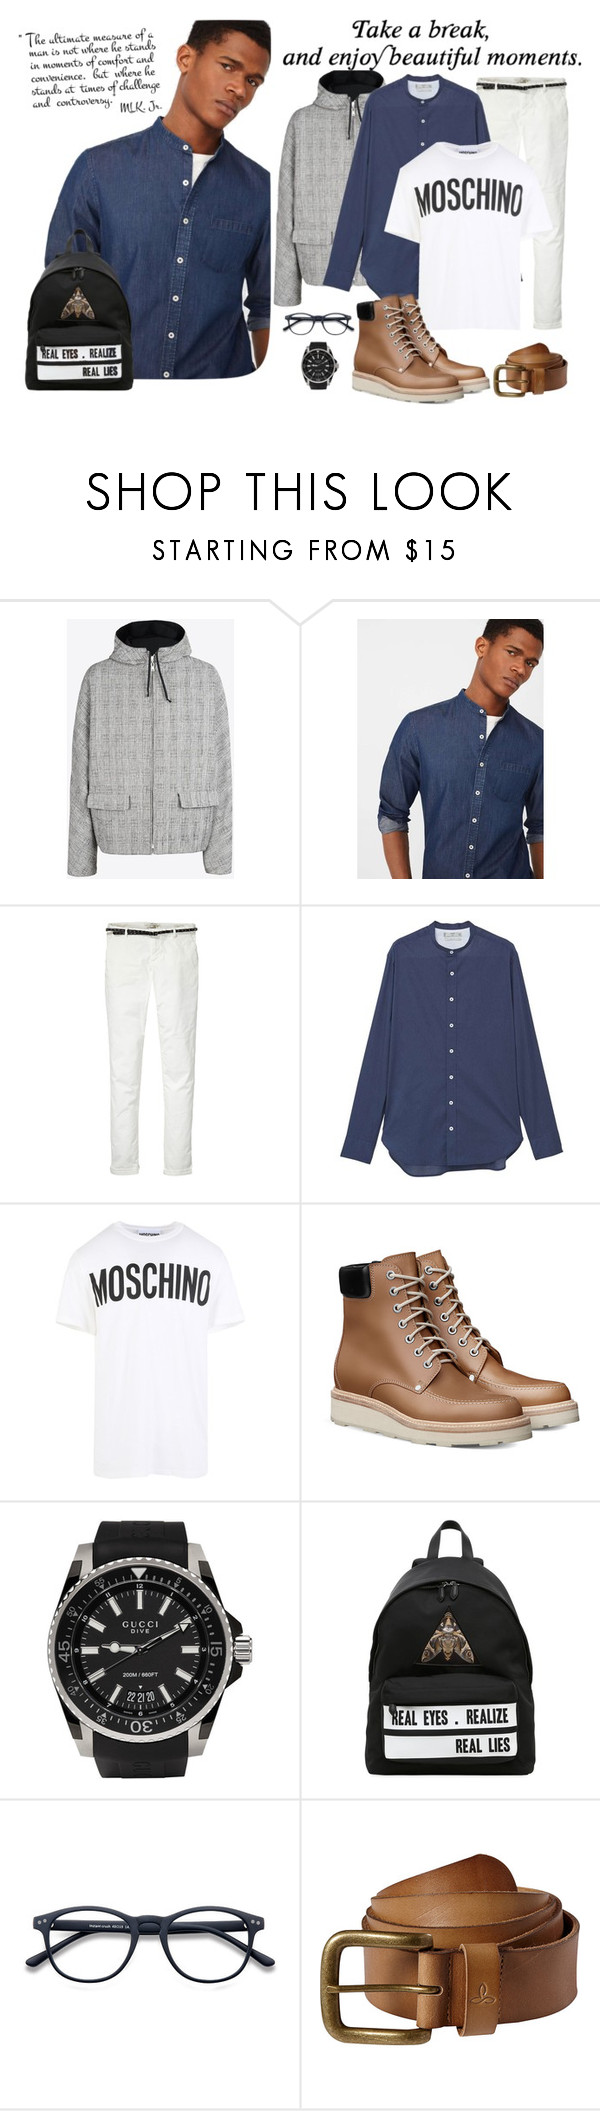 """My world was better by his side."" by lucas-lucas-c ❤ liked on Polyvore featuring Maison Margiela, MANGO MAN, Maison Scotch, MANGO, Moschino, Gucci, Givenchy, prAna, men's fashion and menswear"